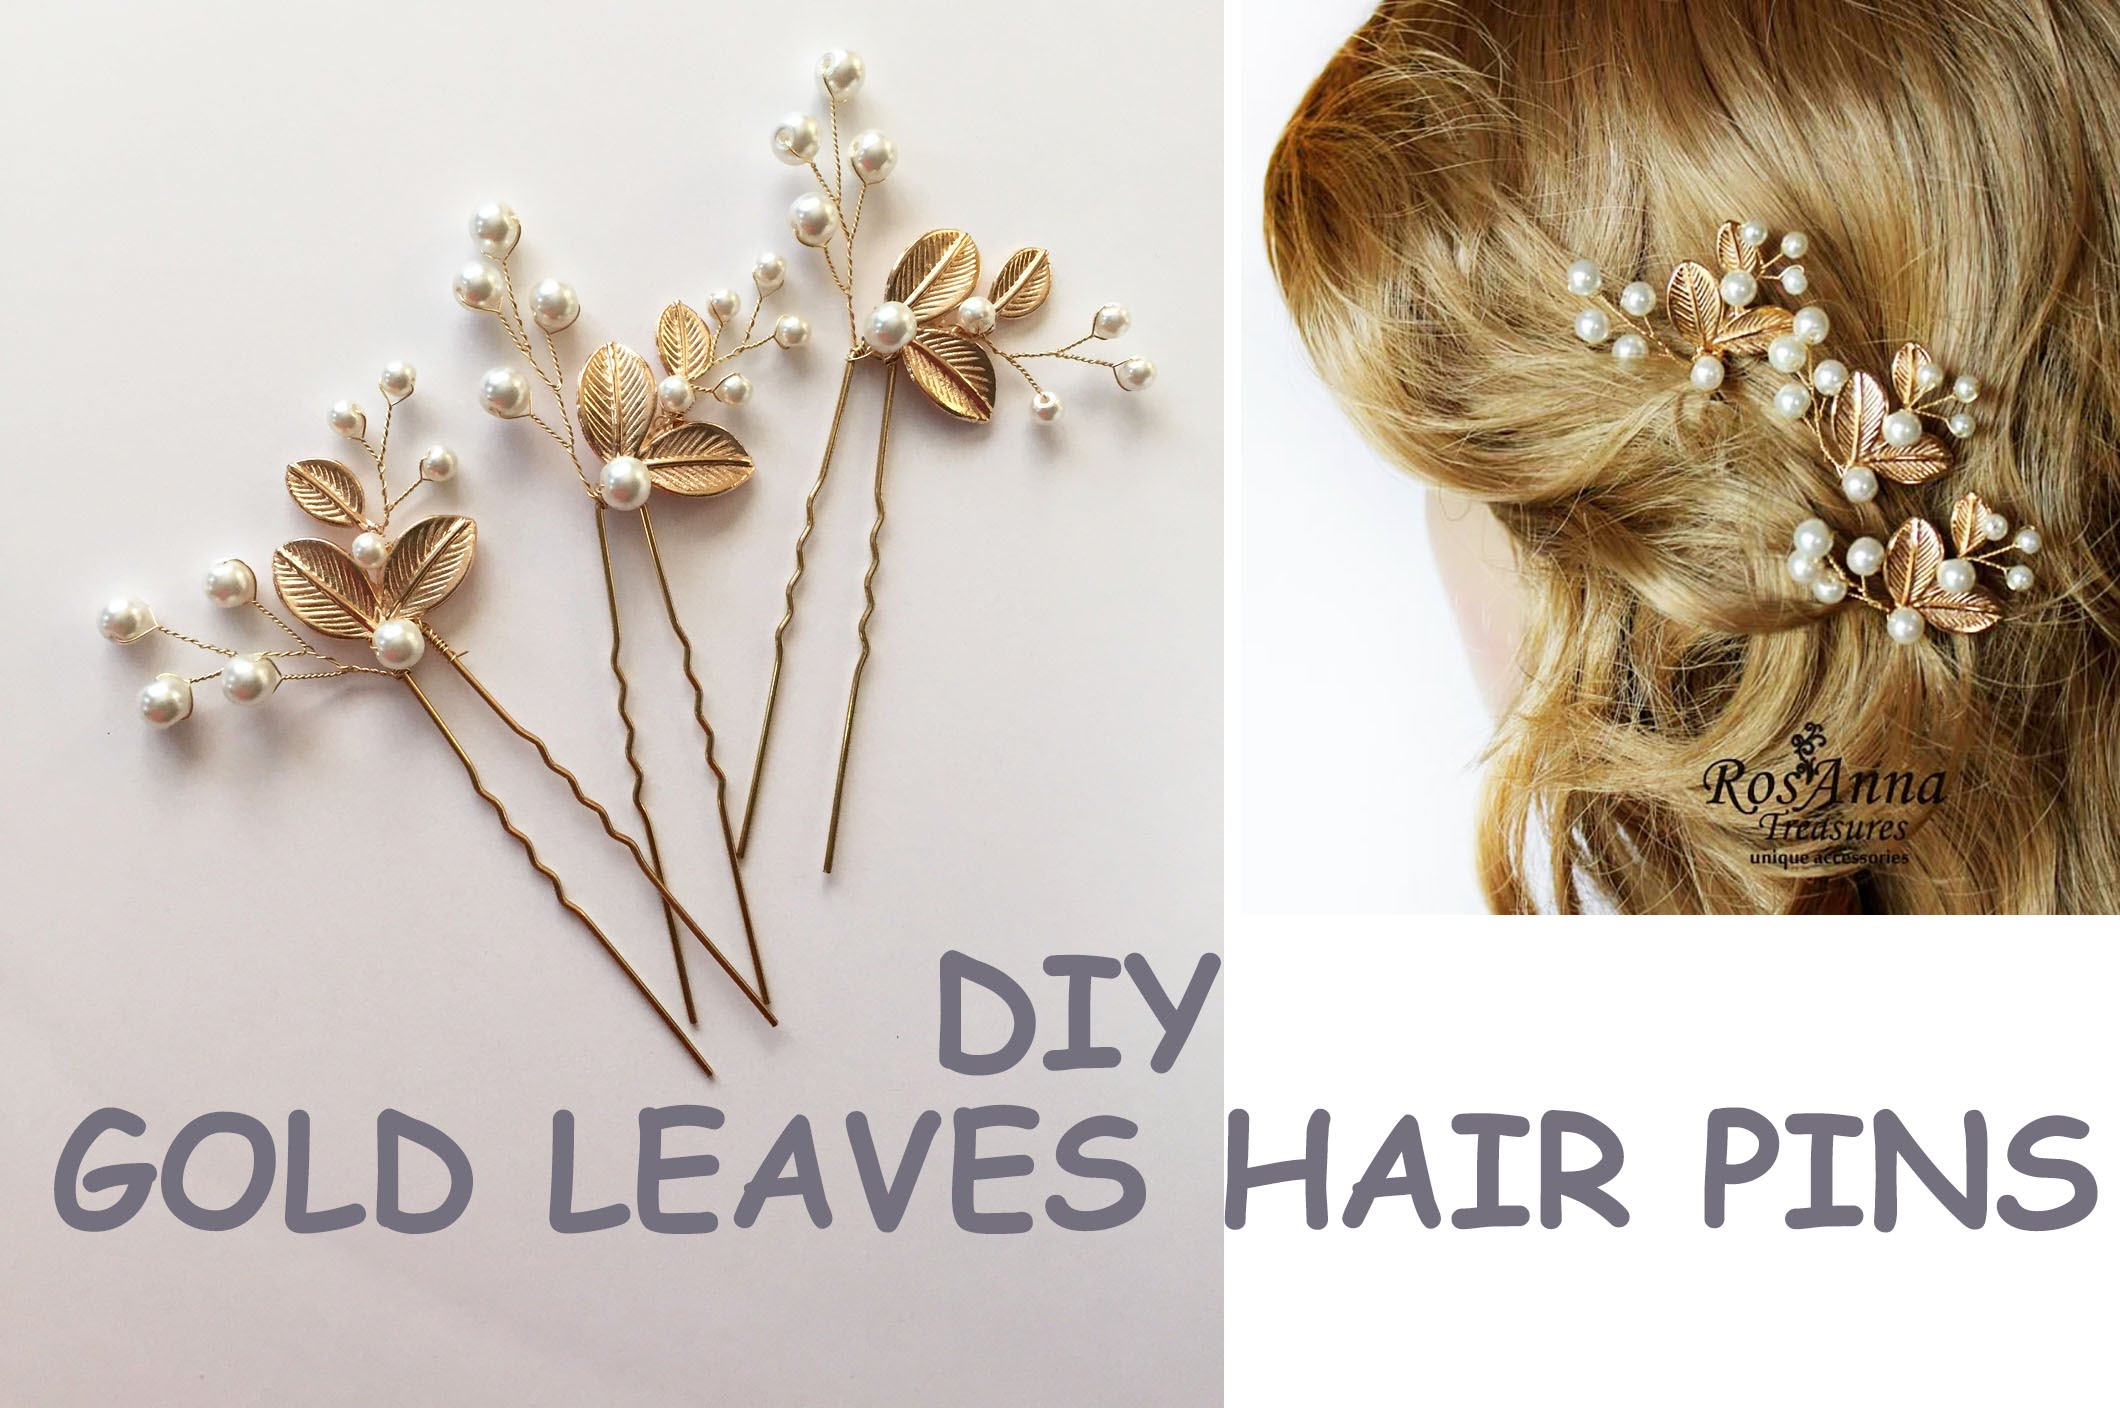 Gold hair pins archives annlace bridal hair vine gold leaves pearl hair pins diy tutorial 001 solutioingenieria Image collections